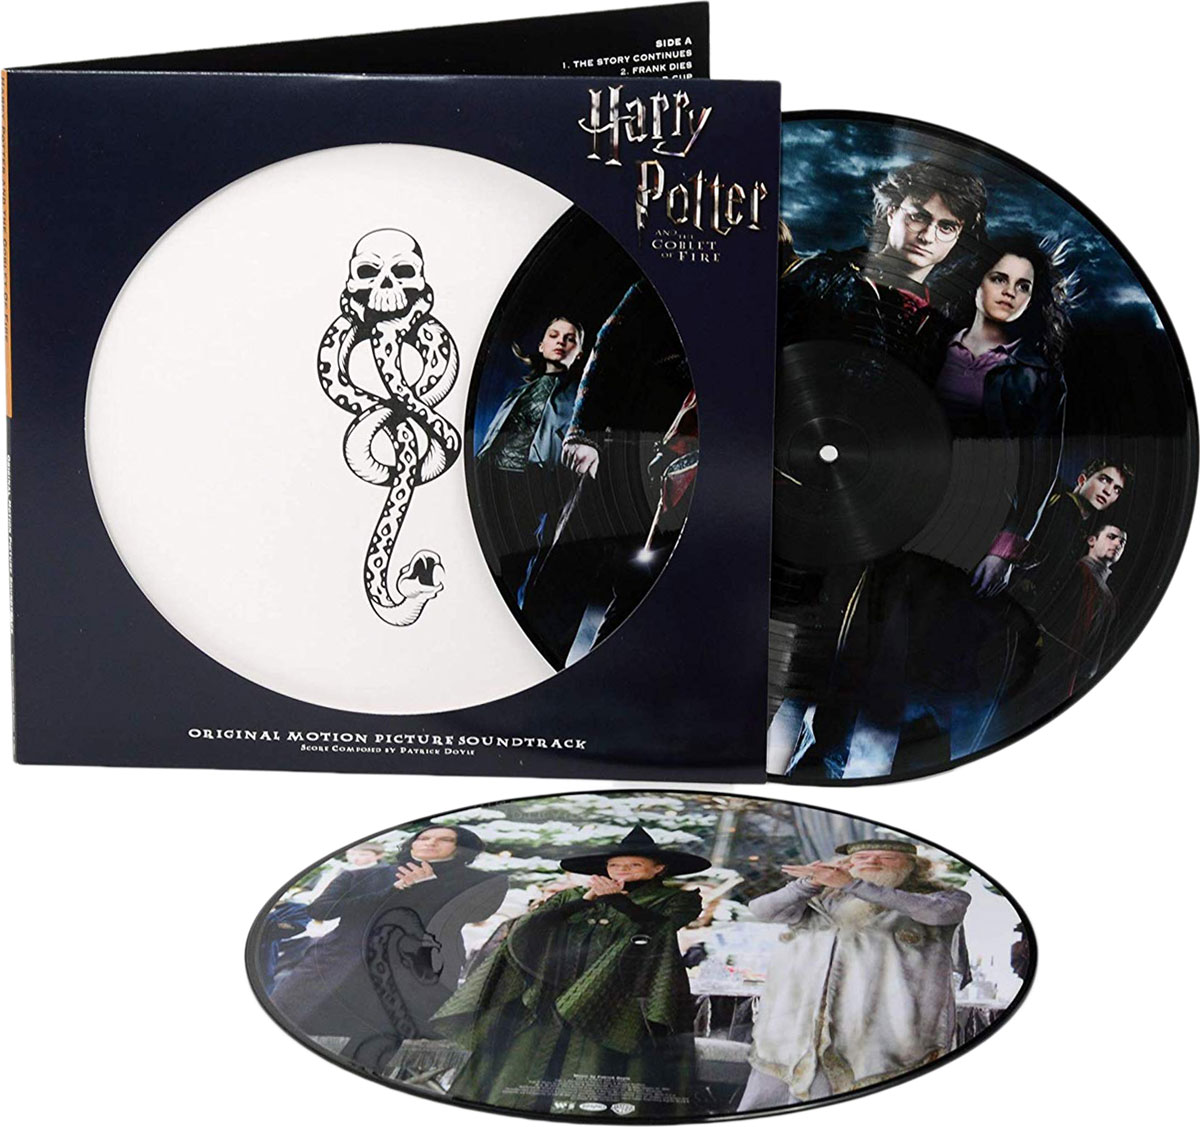 Patrick Doyle. Harry Potter And The Goblet Of Fire. Original Motion Picture Soundtrack (2 LP) valve studio orchestra the dota 2 official soundtrack lp